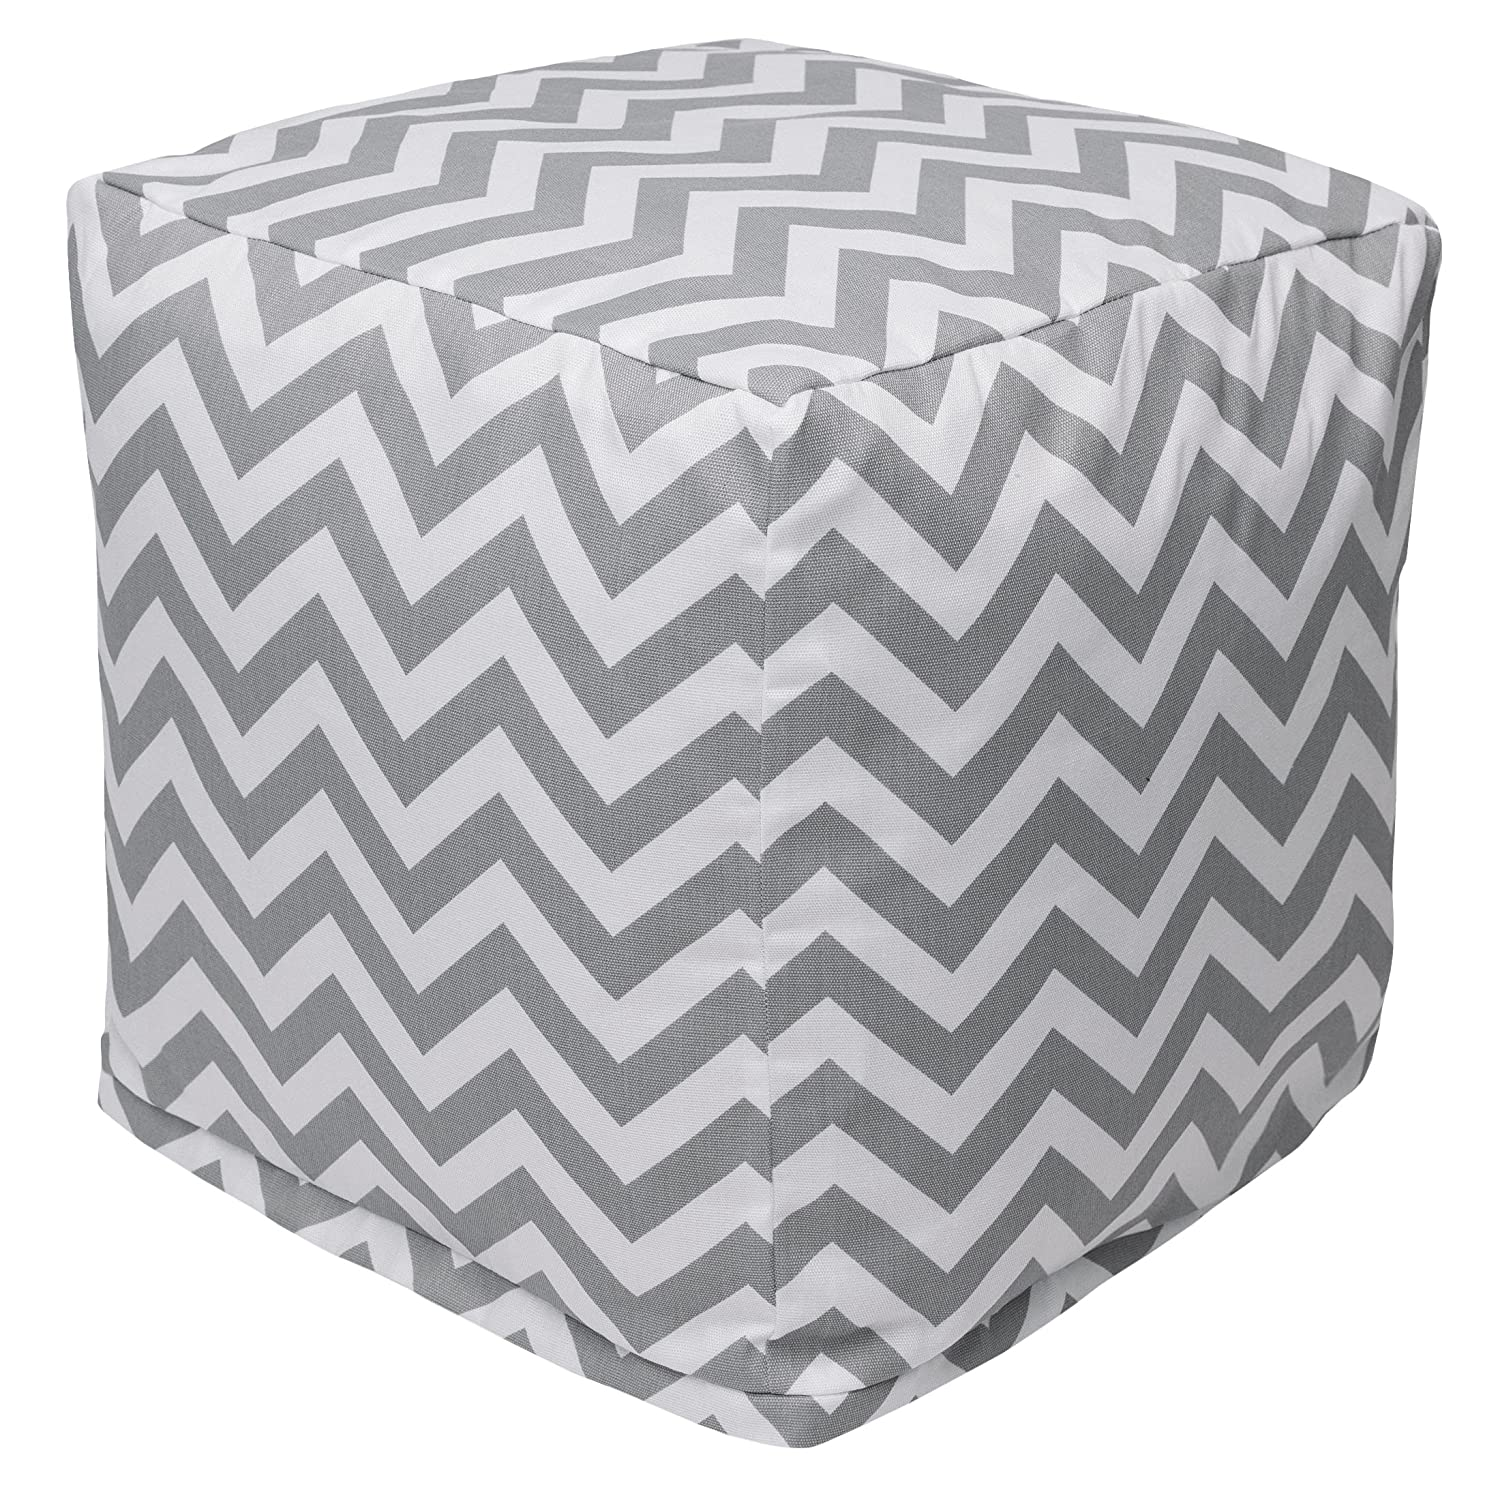 Majestic Home Goods Black Chevron Small Cube 85907220130